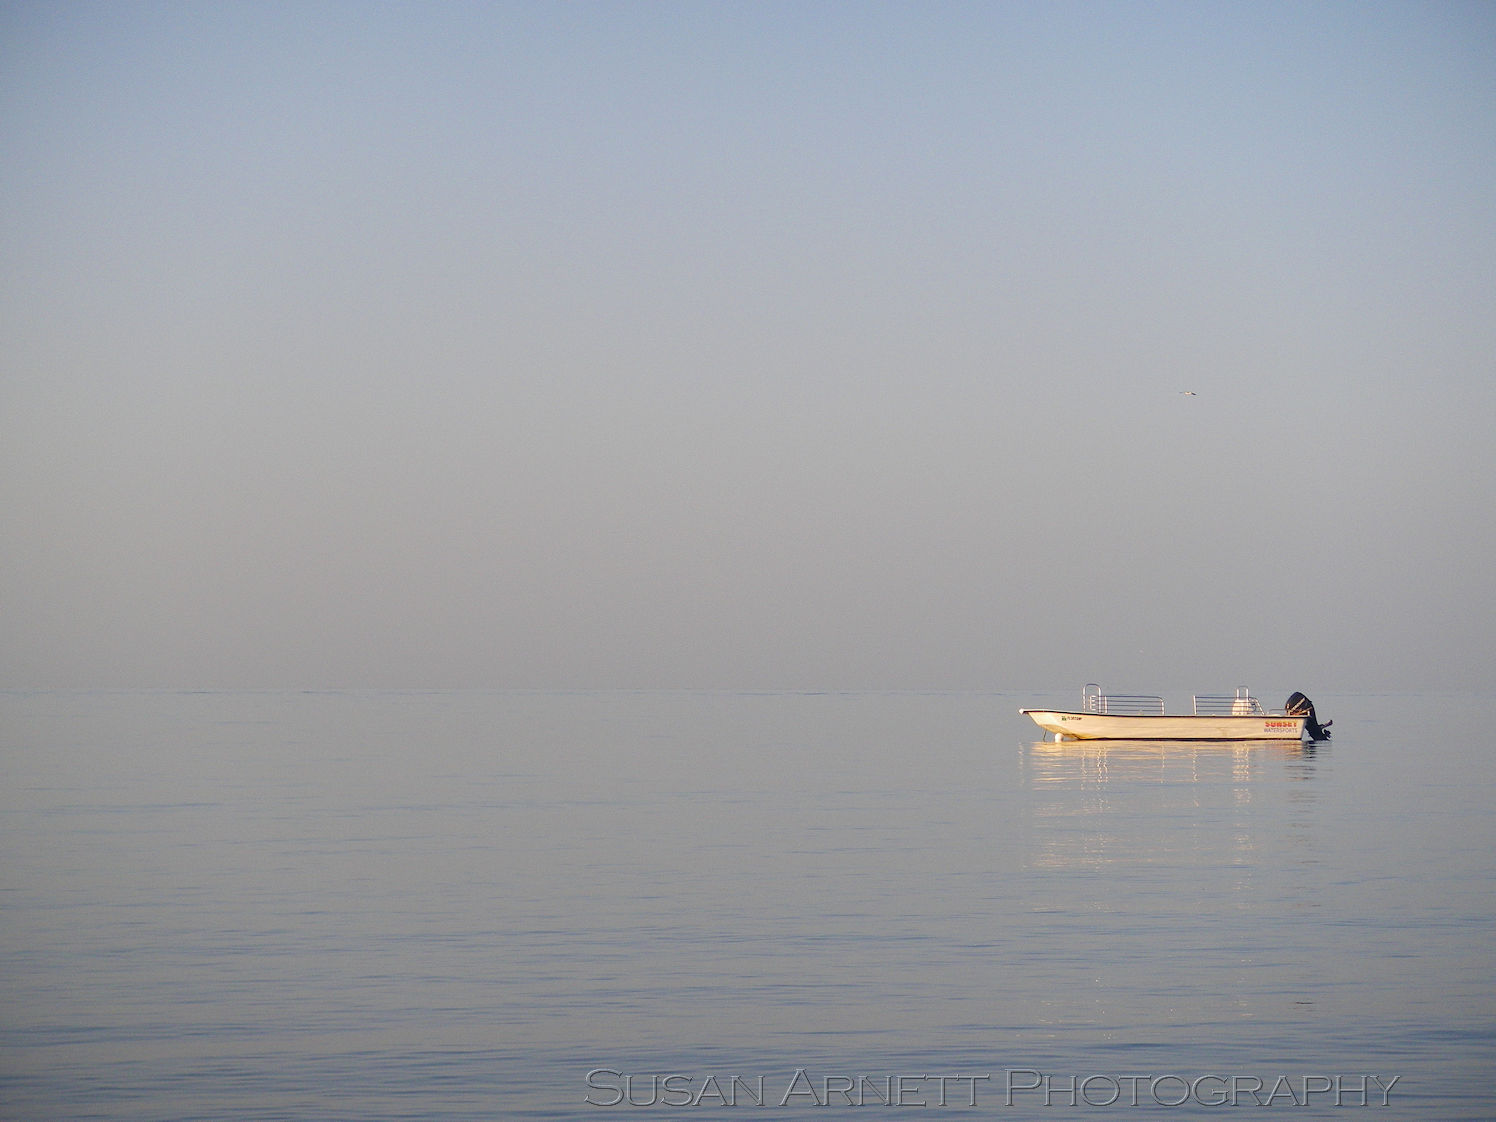 A lone small boat floats on the glassy ocean, reflecting the sunrise, as the ocean and sky meld together seamlessly